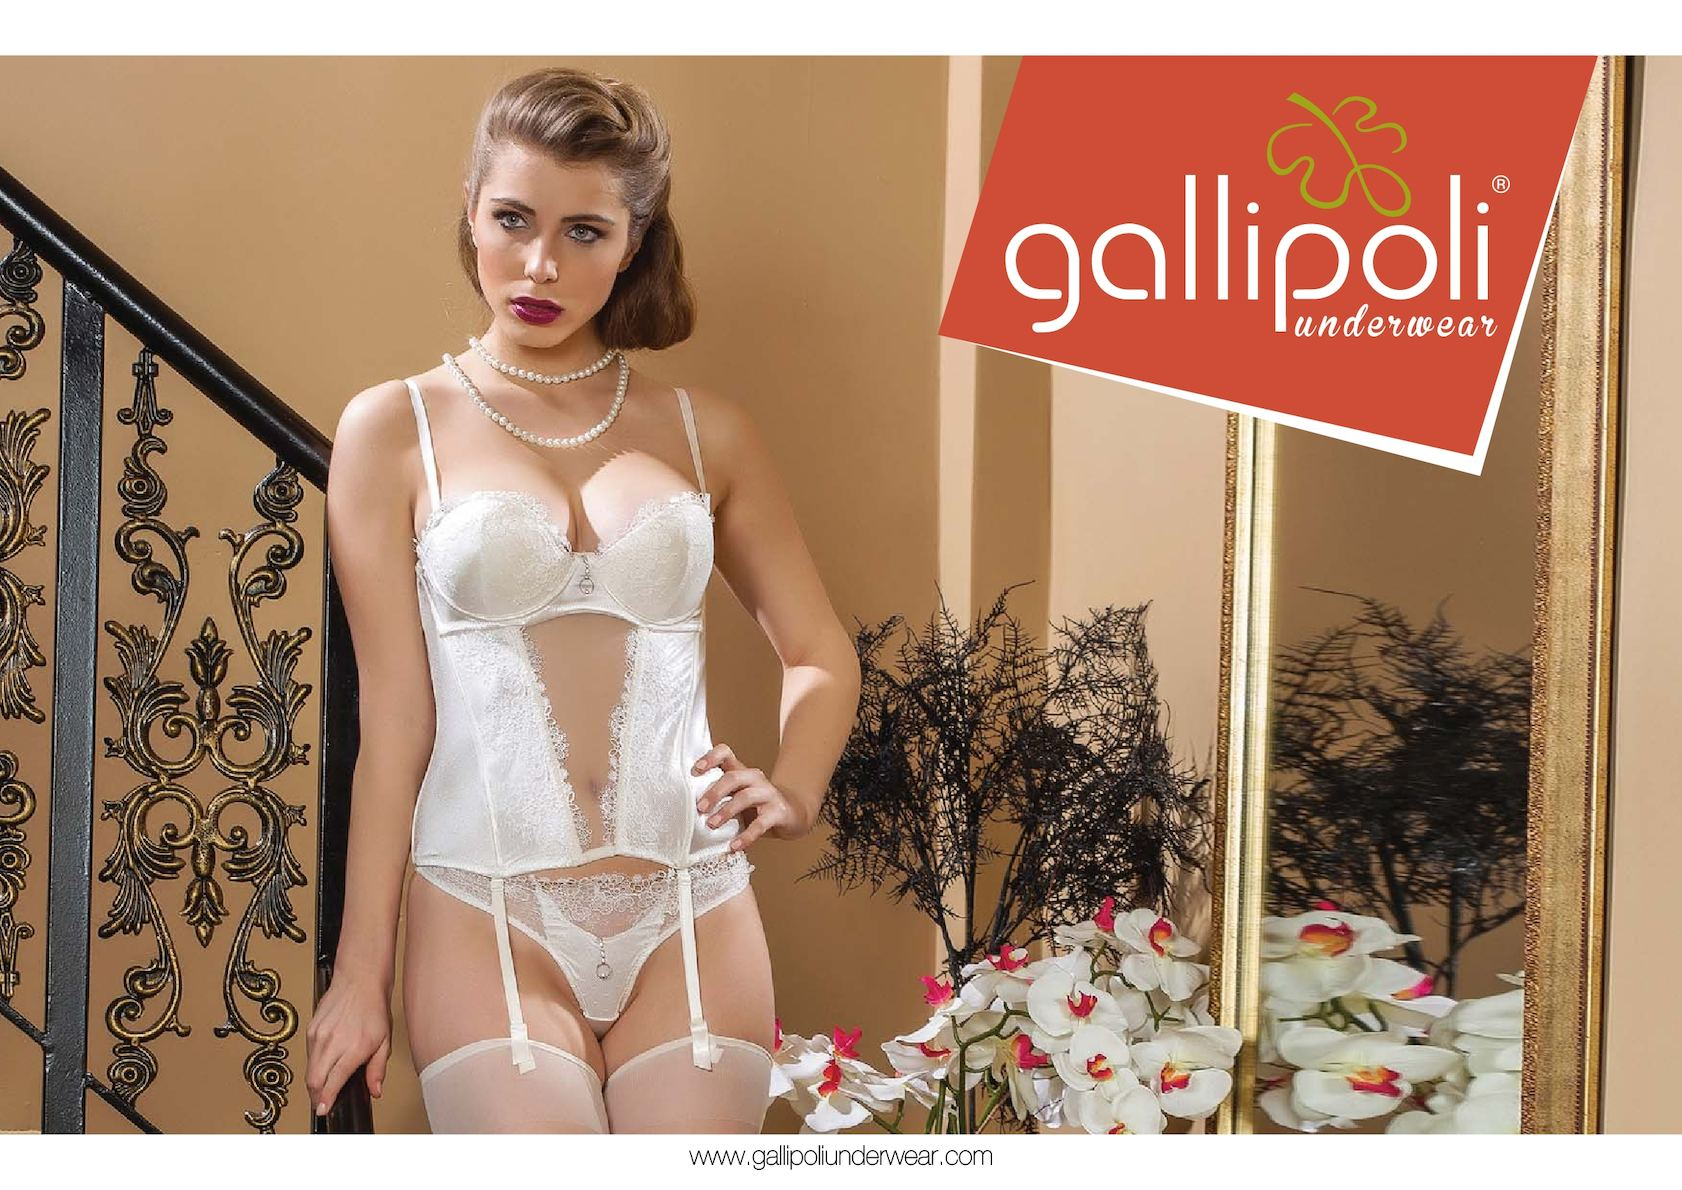 Gallipoli 2016 Lingerie Collection